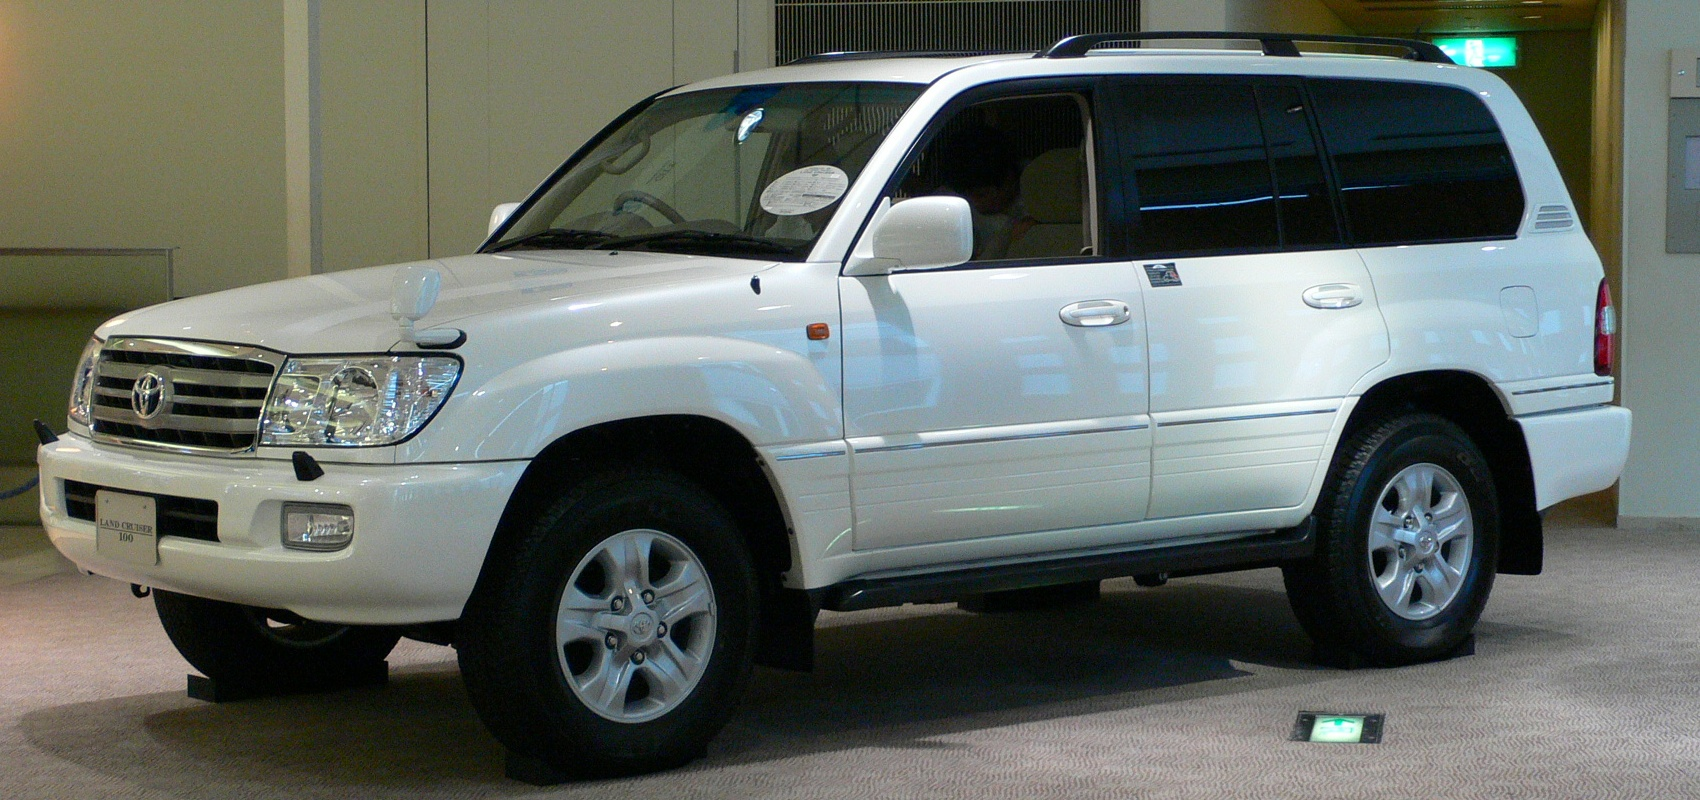 Download 2000 Toyota Land Cruiser White